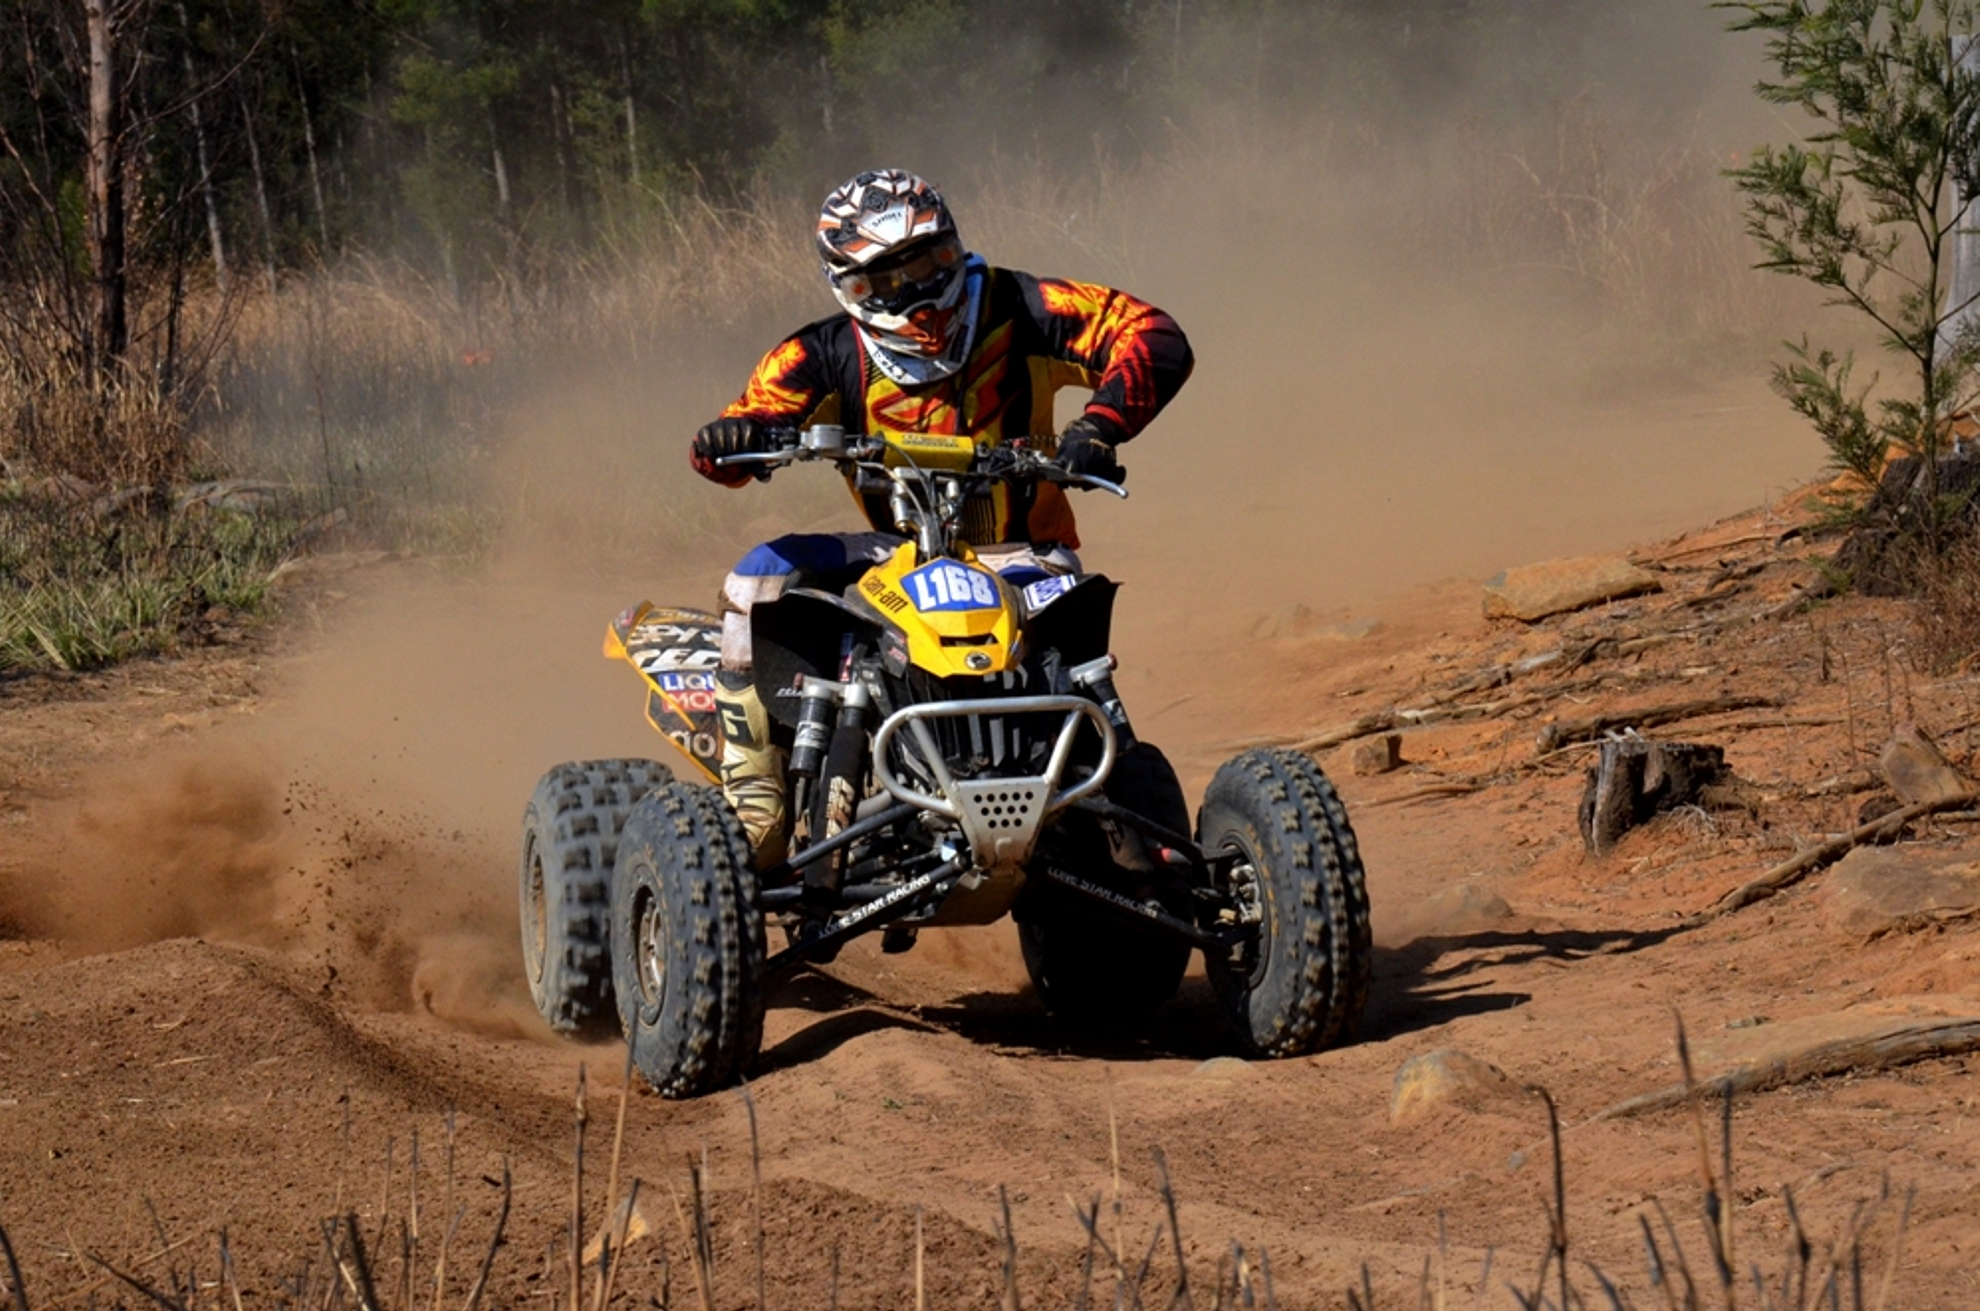 South-Africa Off Road Racing